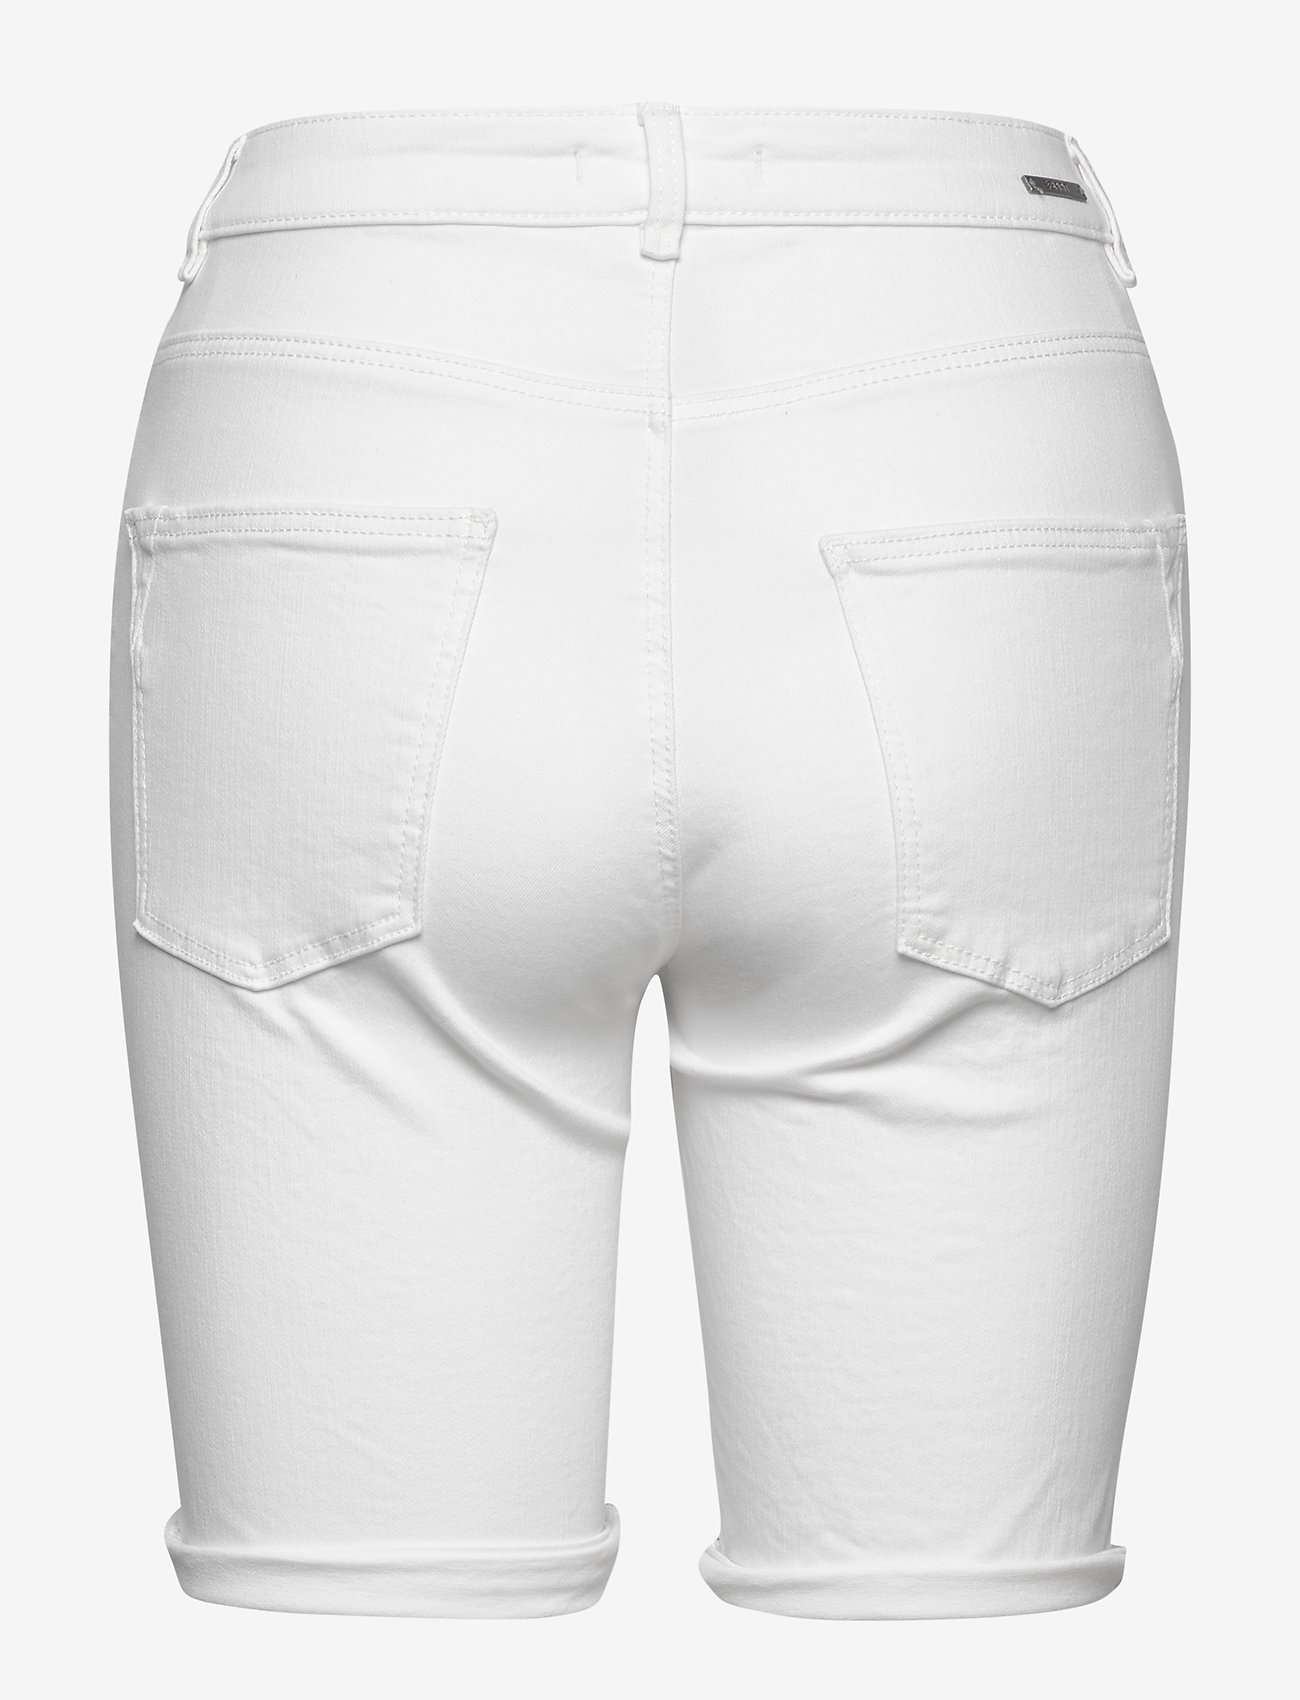 Shorts Woven (White) - Esprit Casual 6wEJ2f